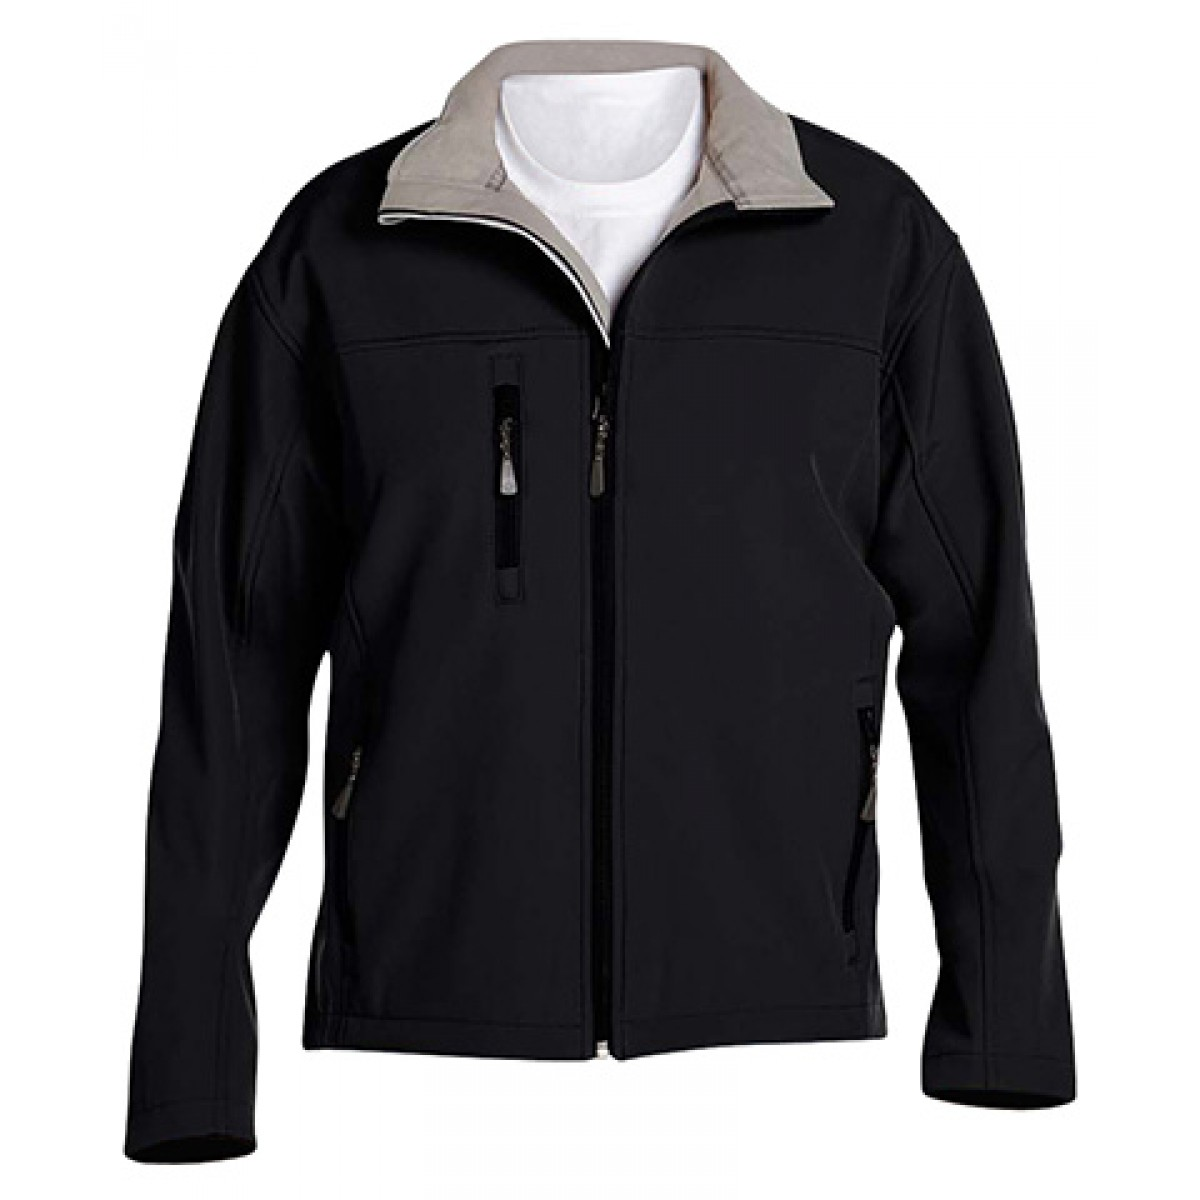 Men's Soft Shell Jacket-Black-S